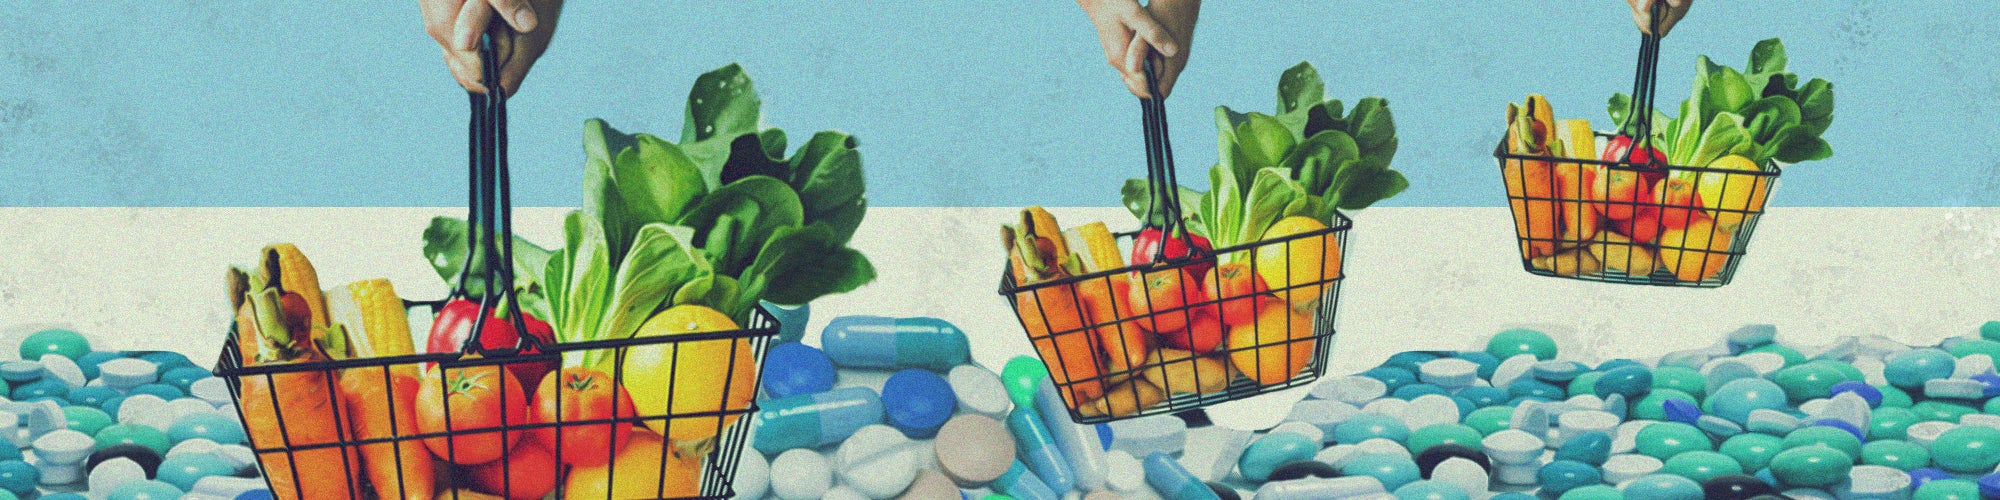 Nutrients From Food, Not Supplements